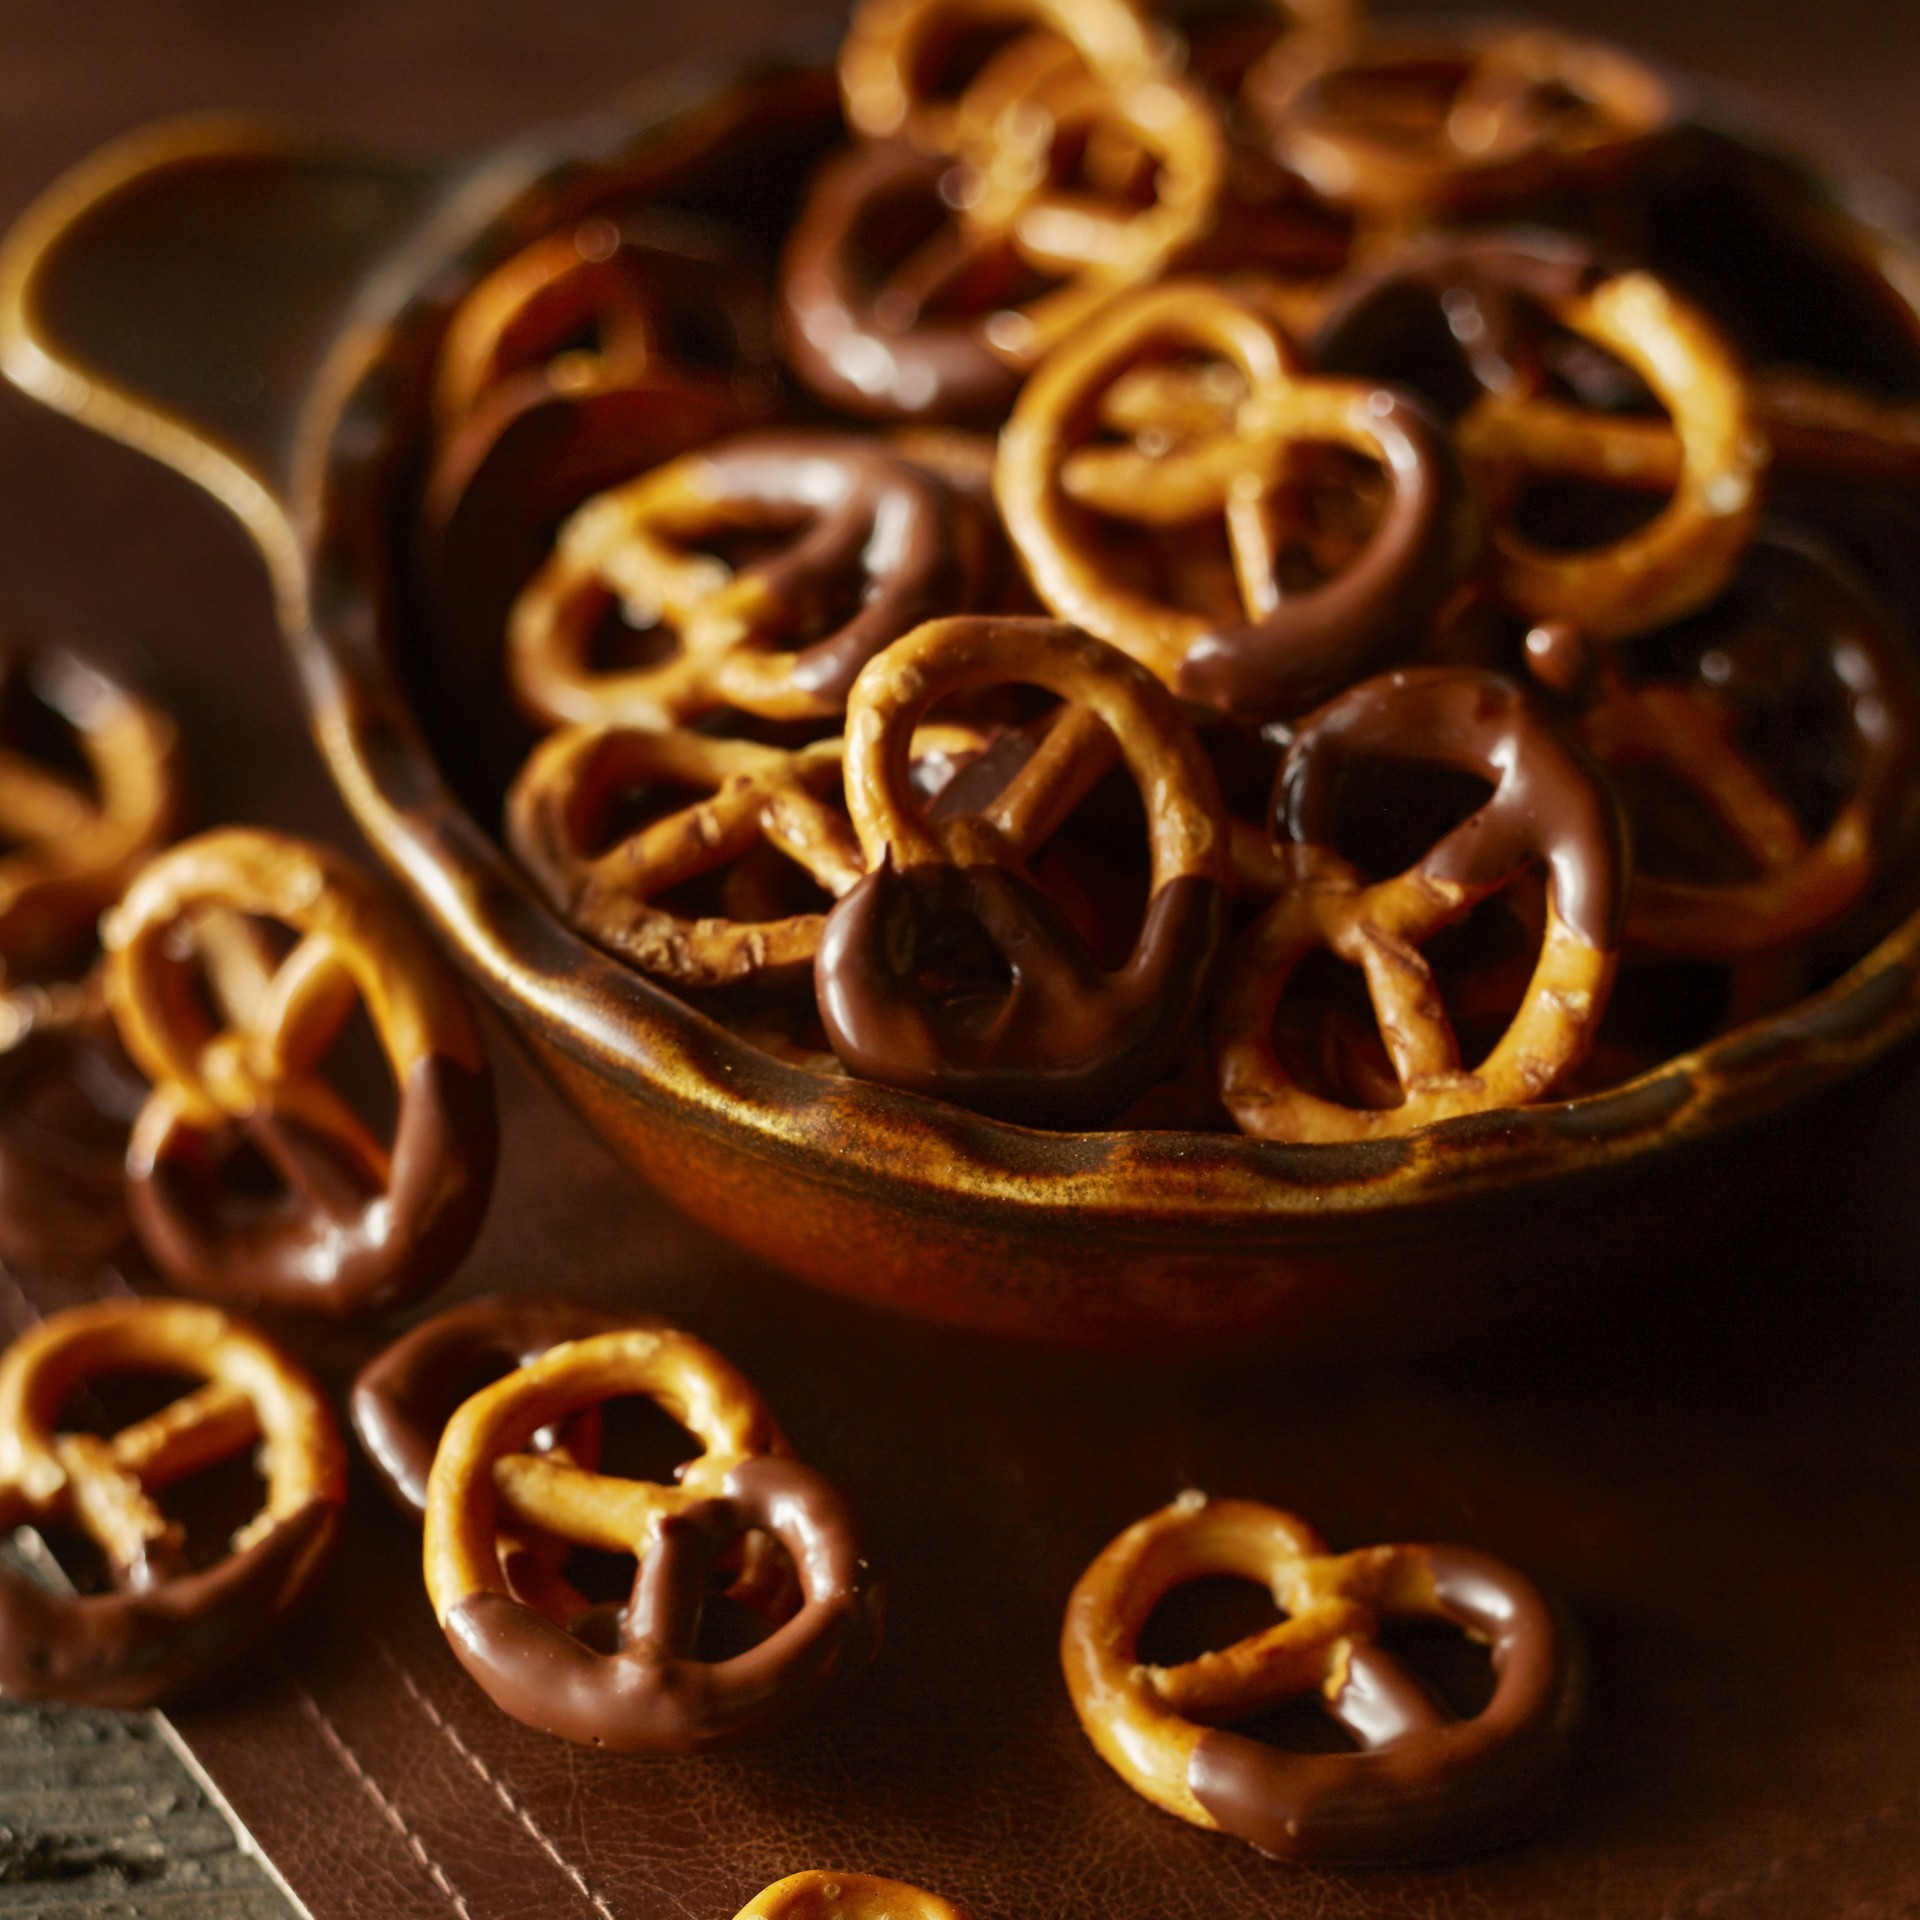 Pretzels with chocolate